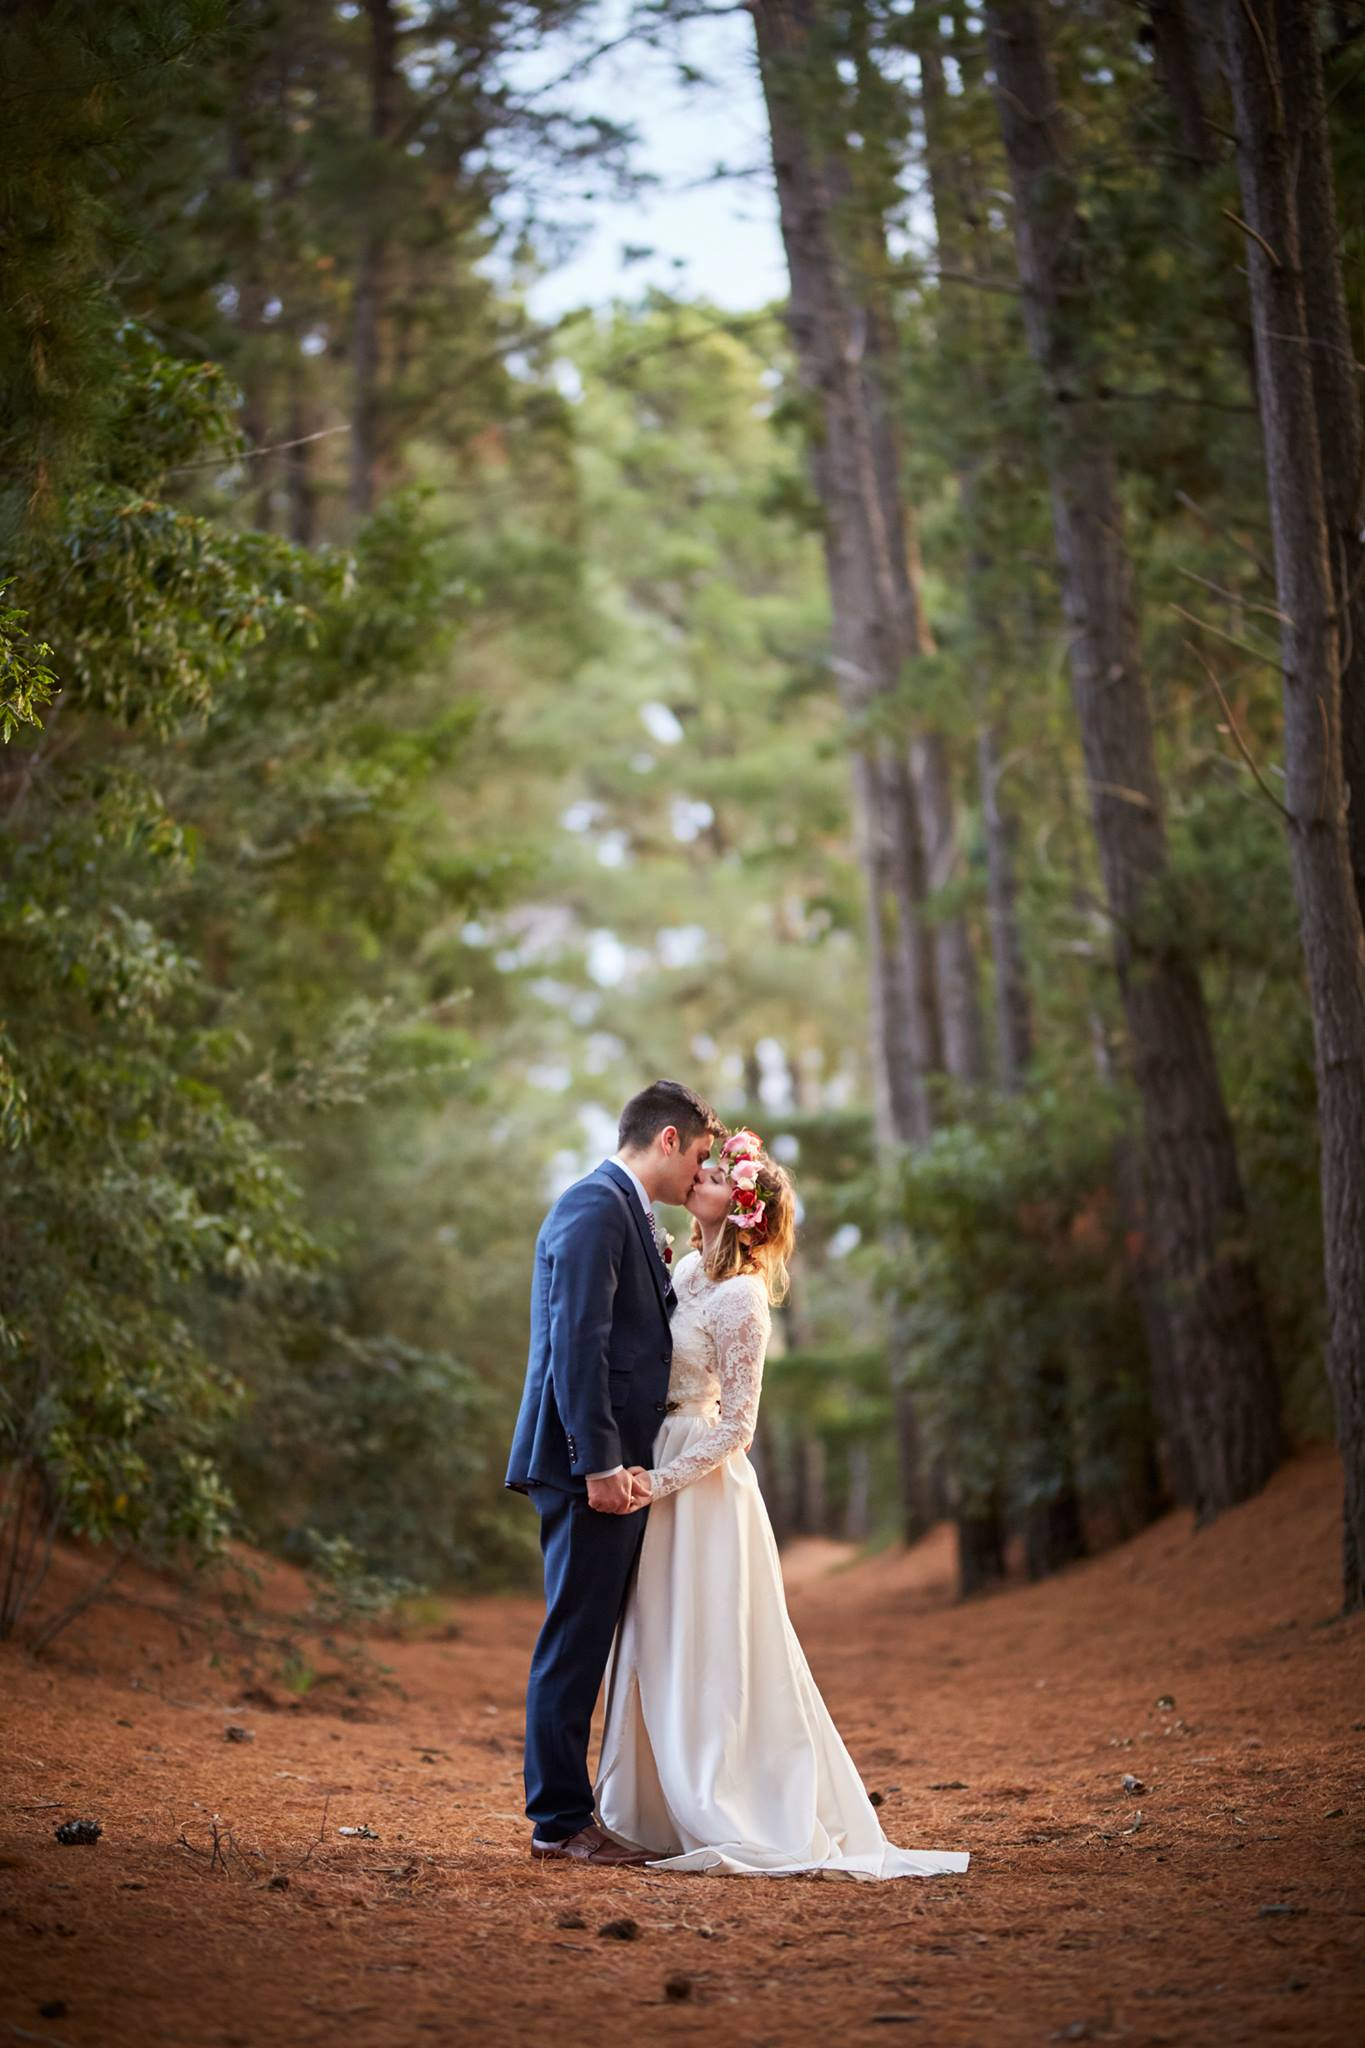 Thomas and Lucinda - April 1st, 2017Coolart Homestead,SommersPhotoggrapghy by ryan wheatley